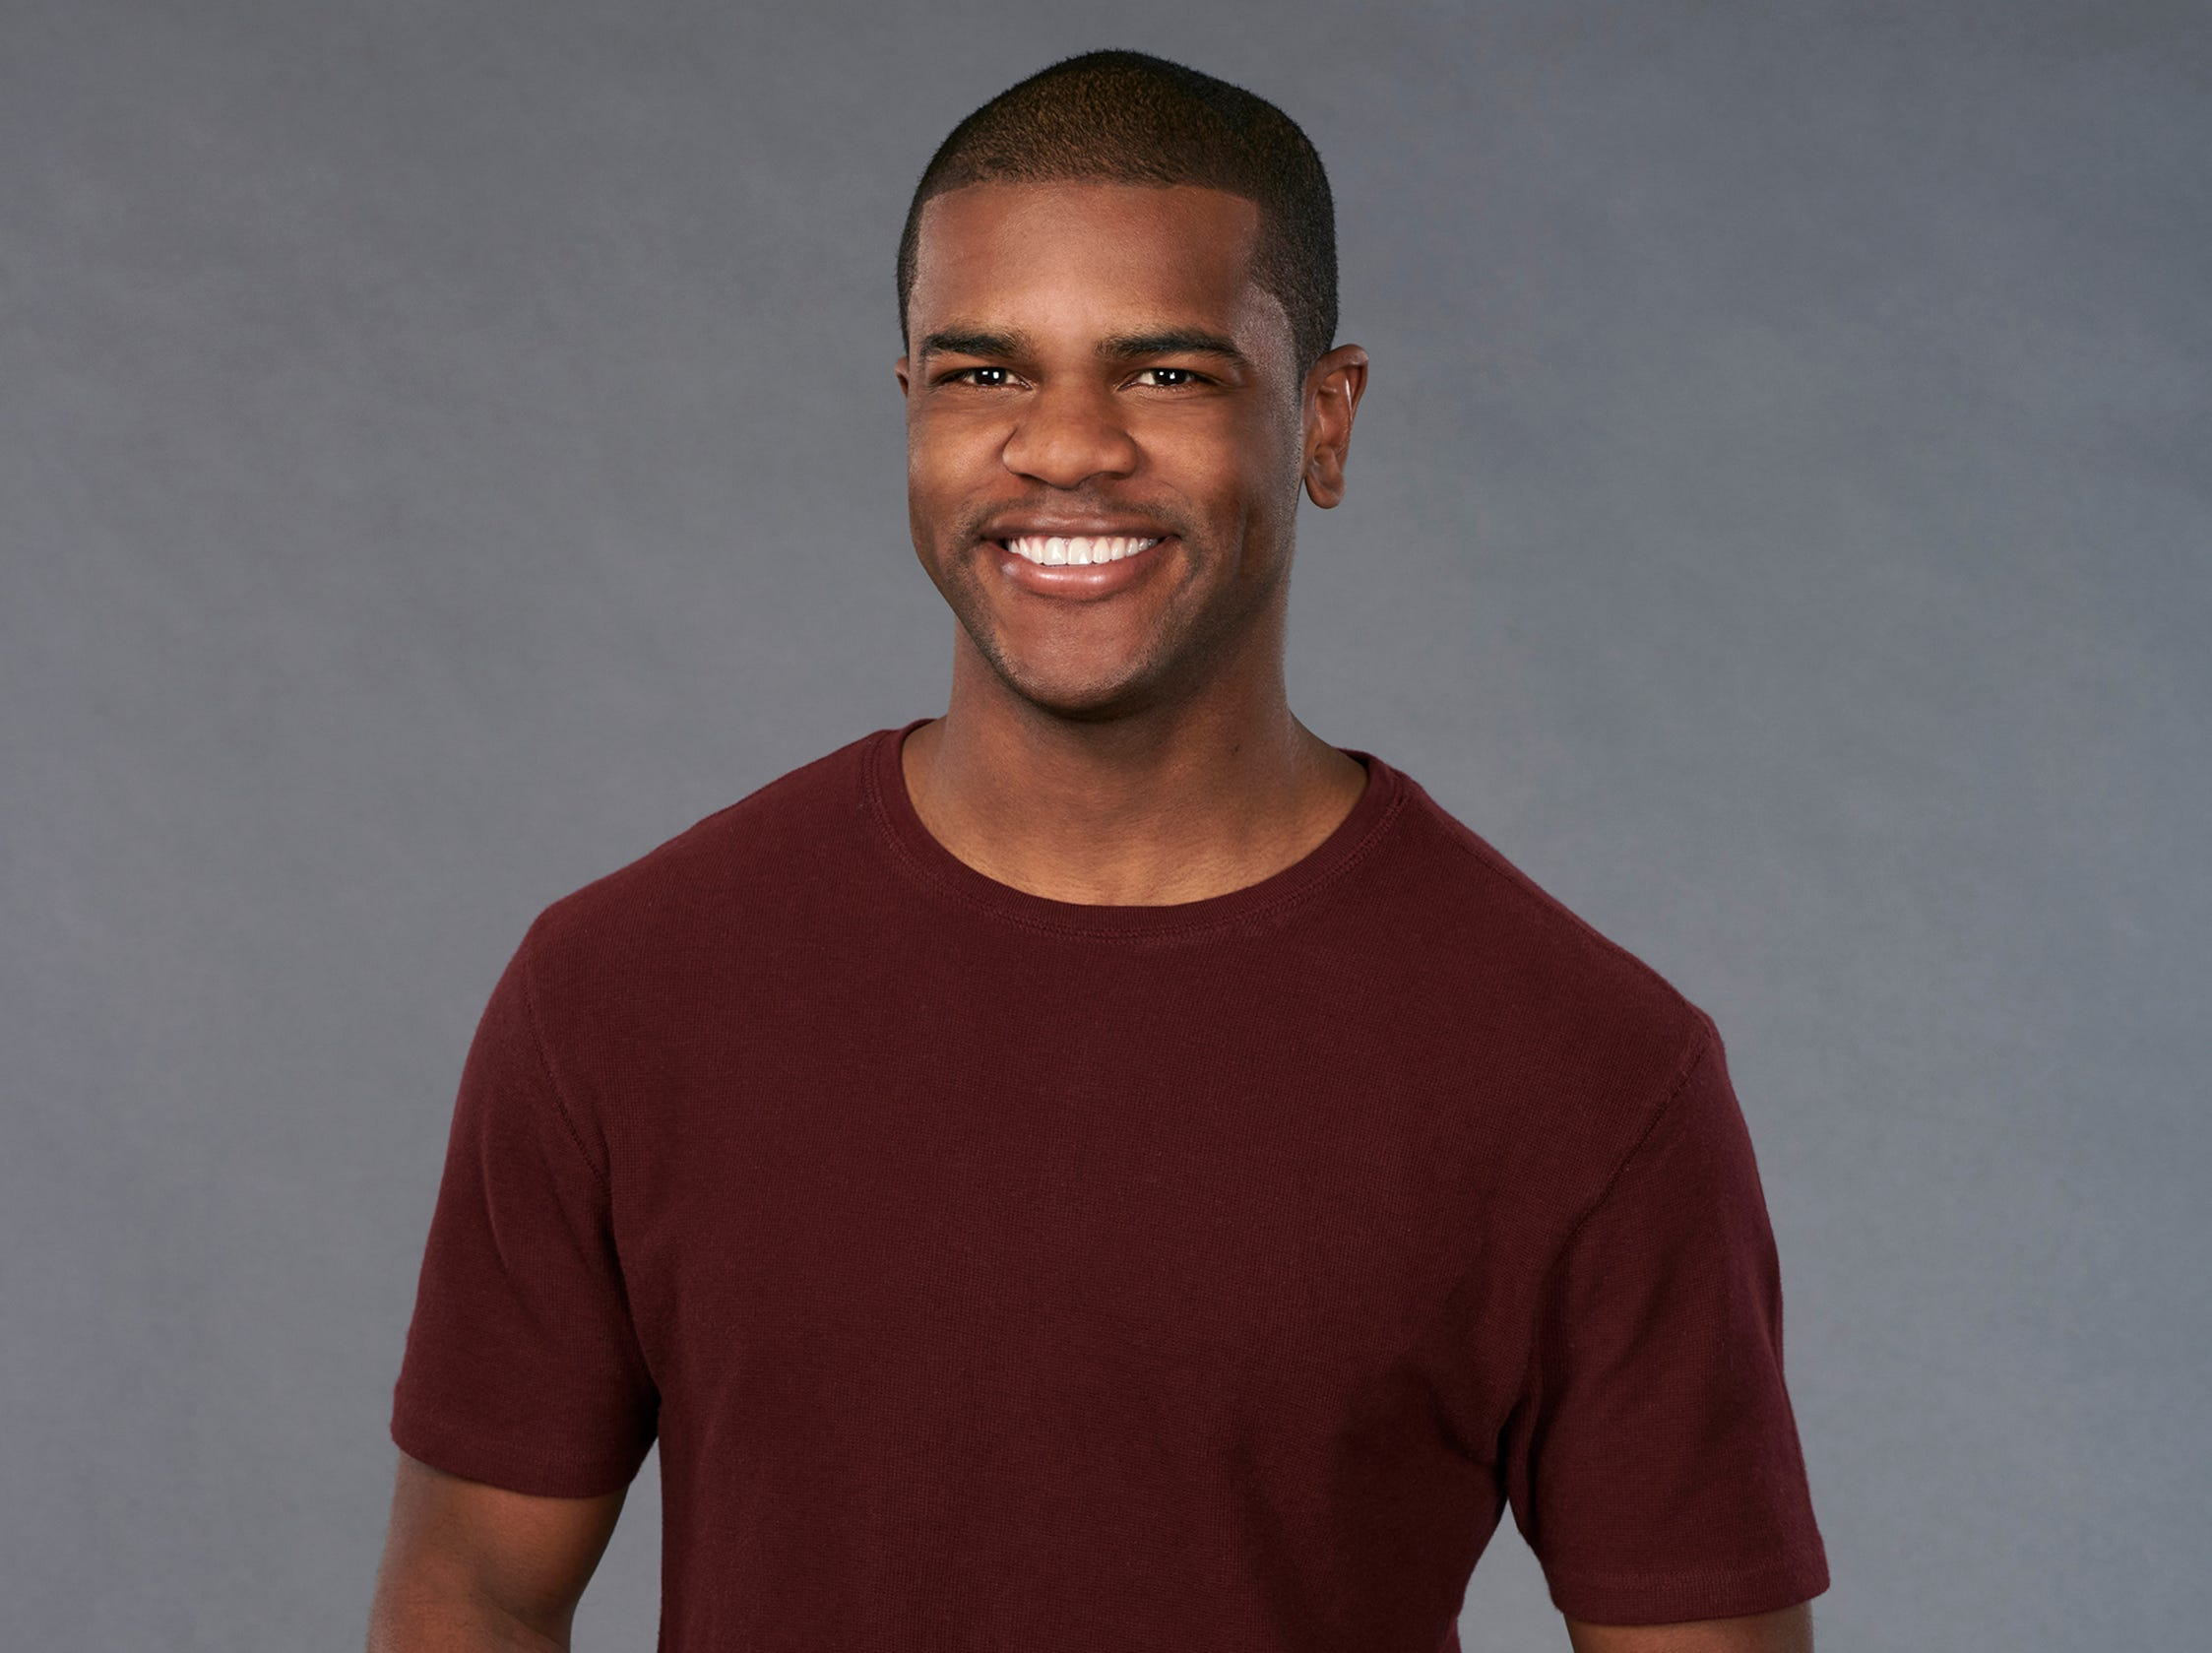 """The Bachelorette"" Season 23 contestant:  Jonathan, 27, Los Angeles, server"